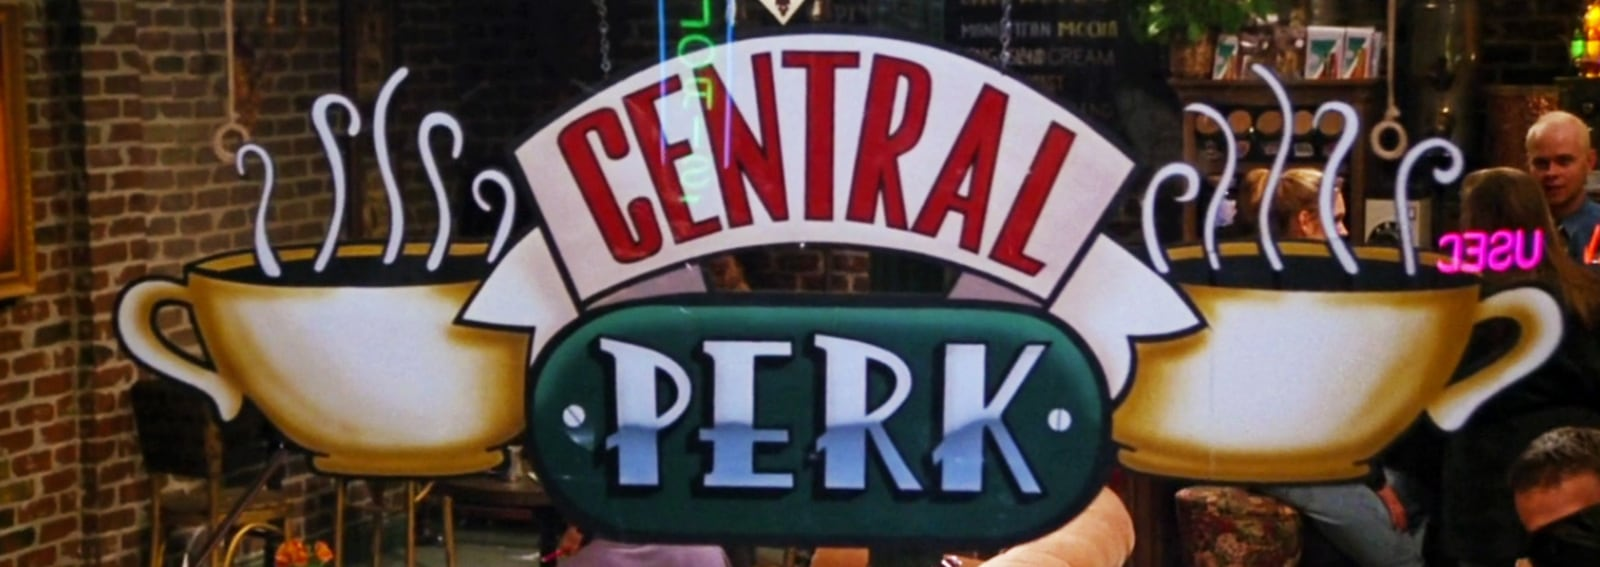 cover apre vero central perk friends desktop